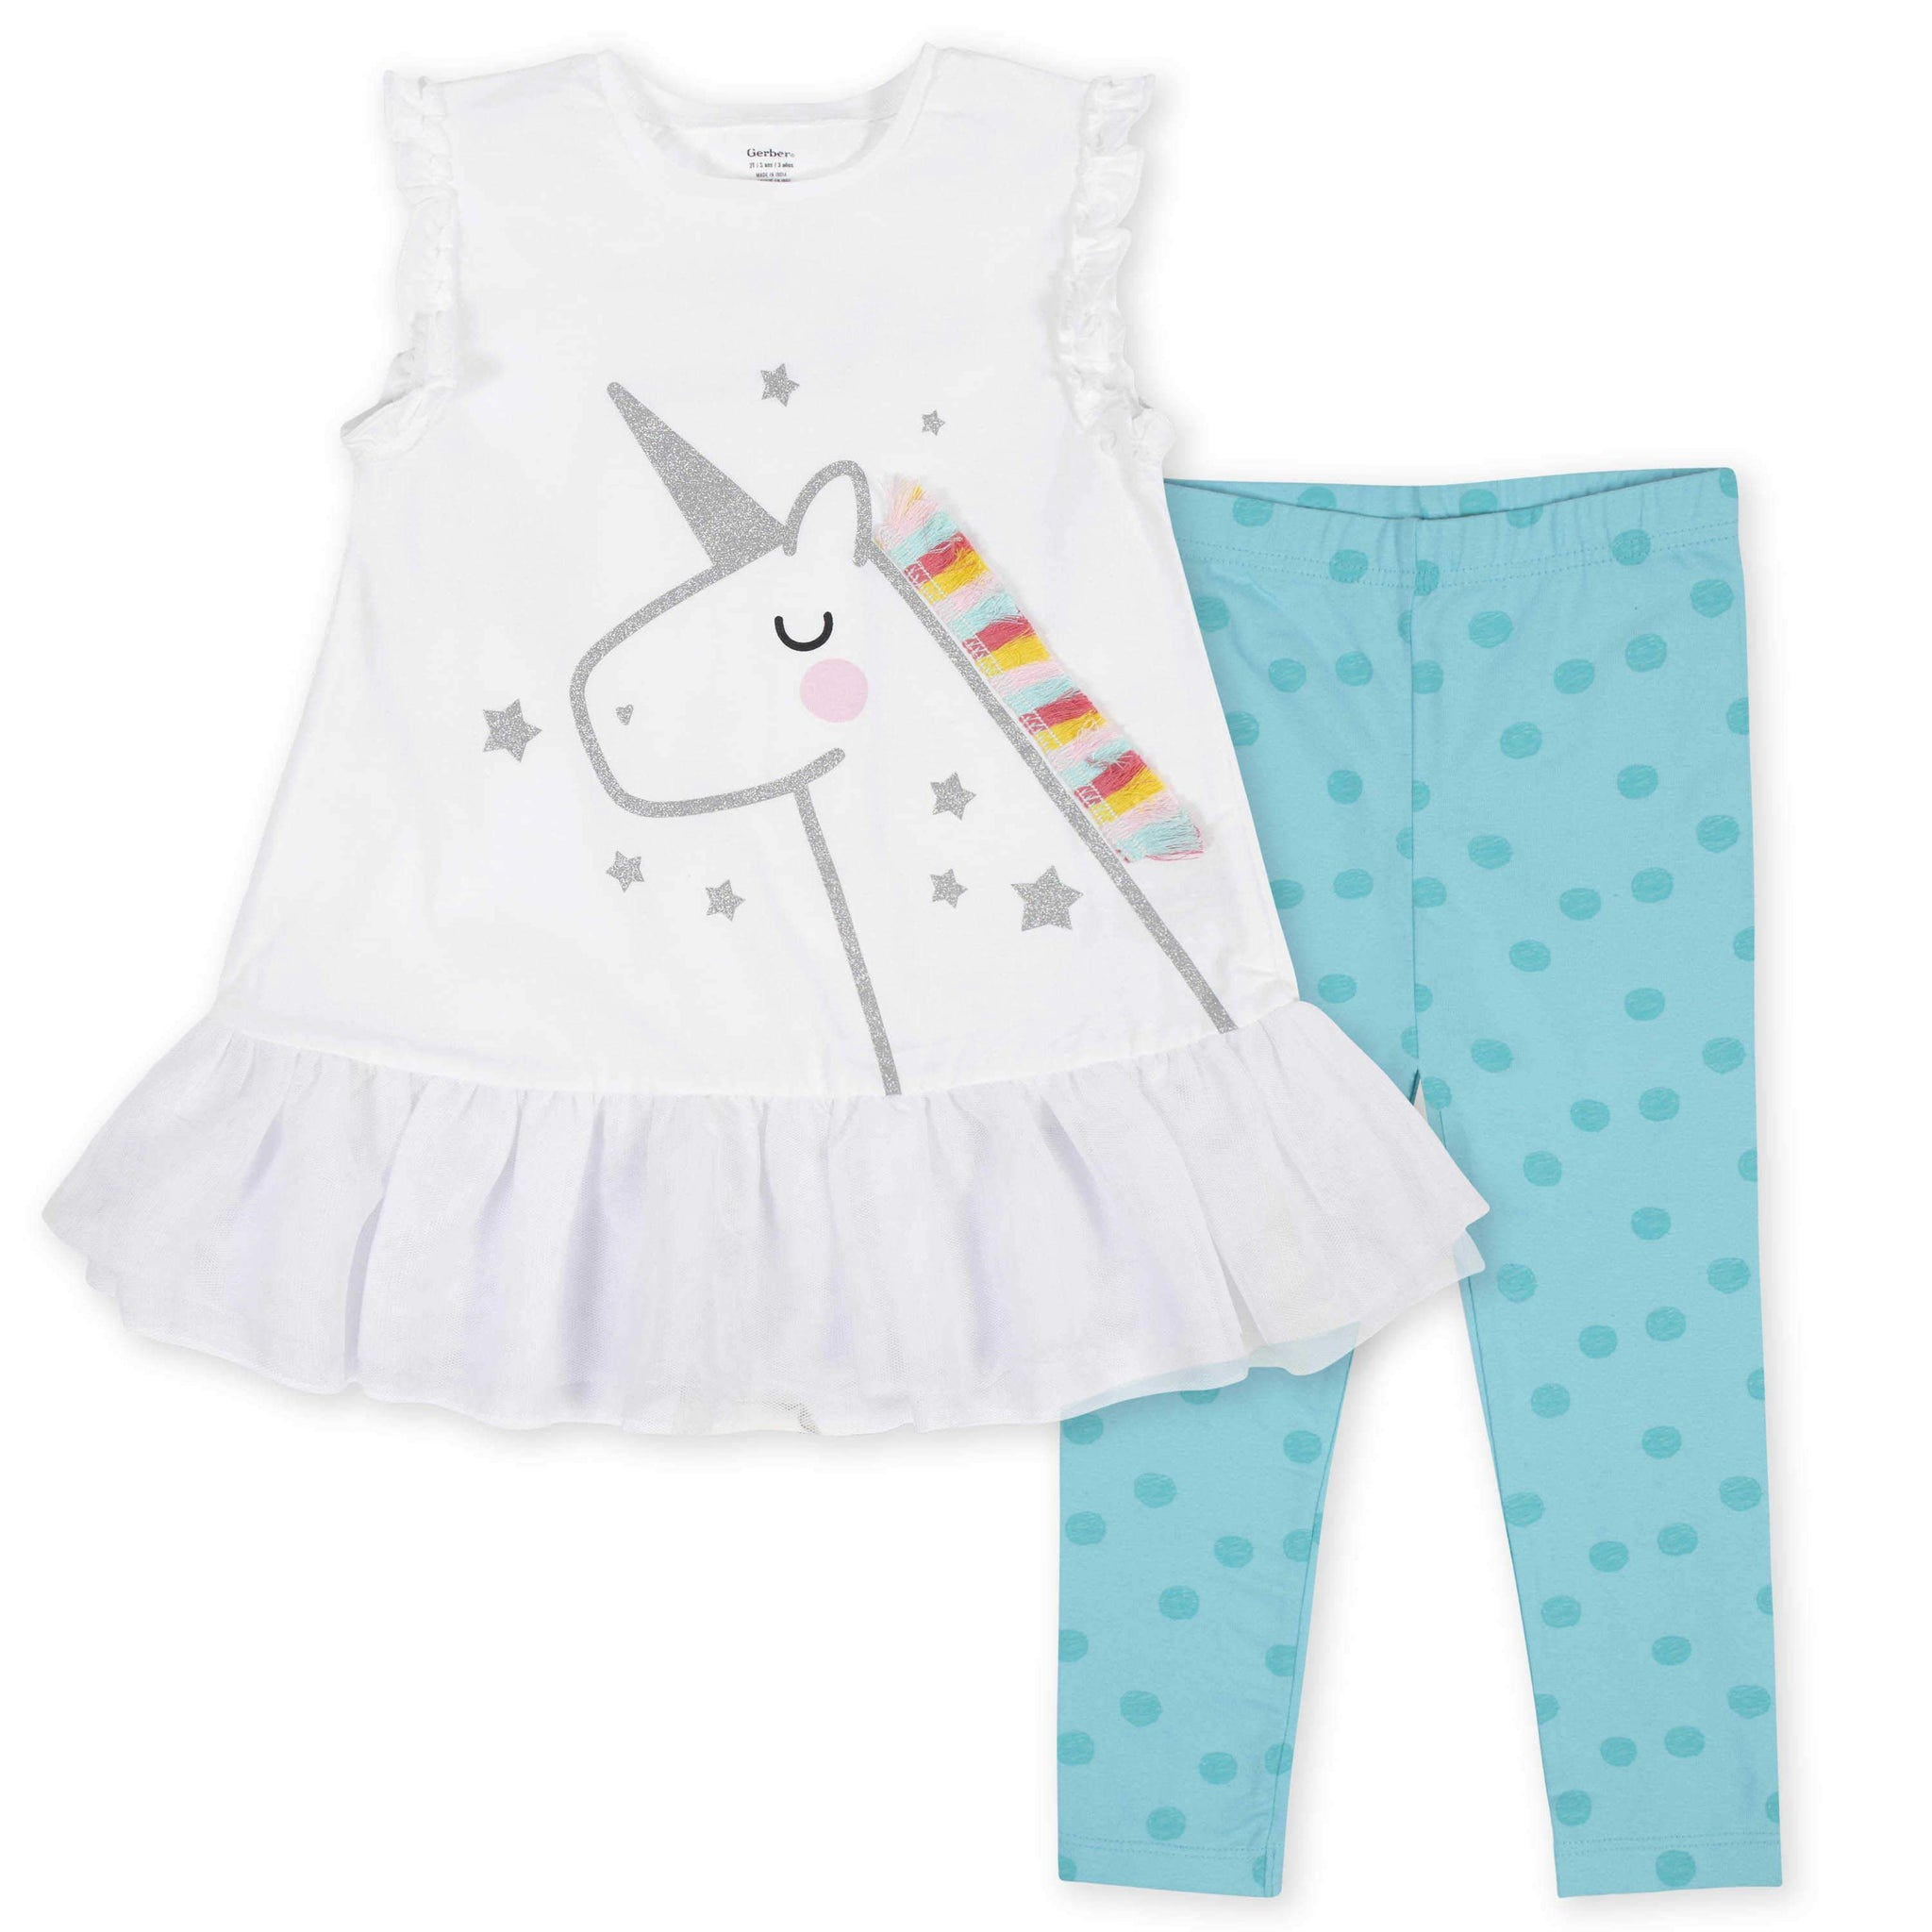 2-Piece Toddler Girls Unicorn Ruffled Tunic and Legging Set